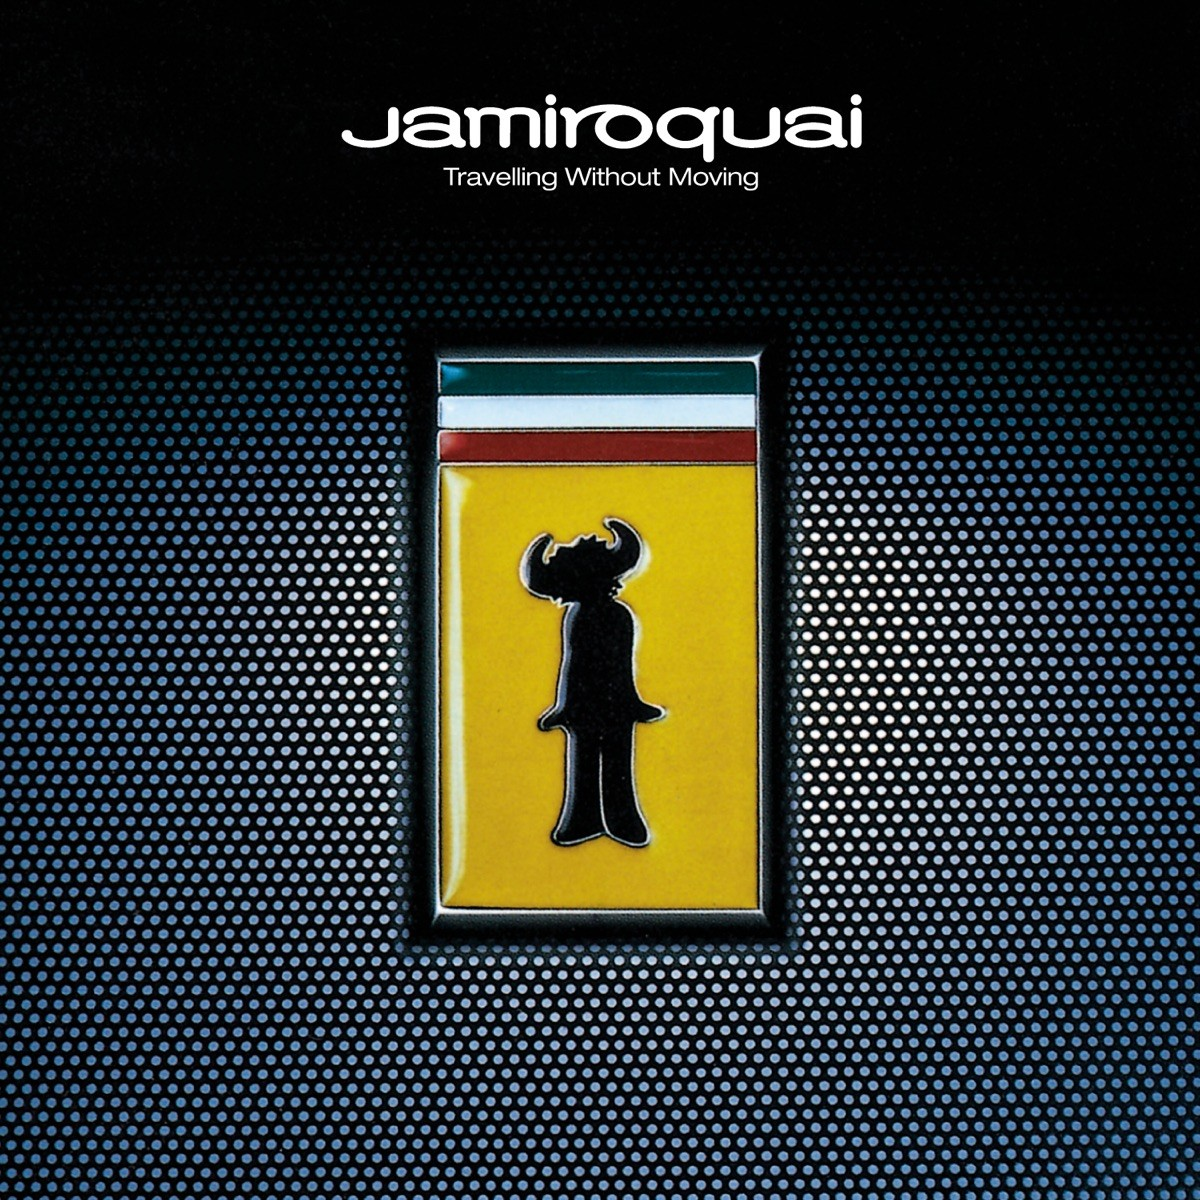 Jamiroquai - Travelling Without Moving CD - CDEPC 5121